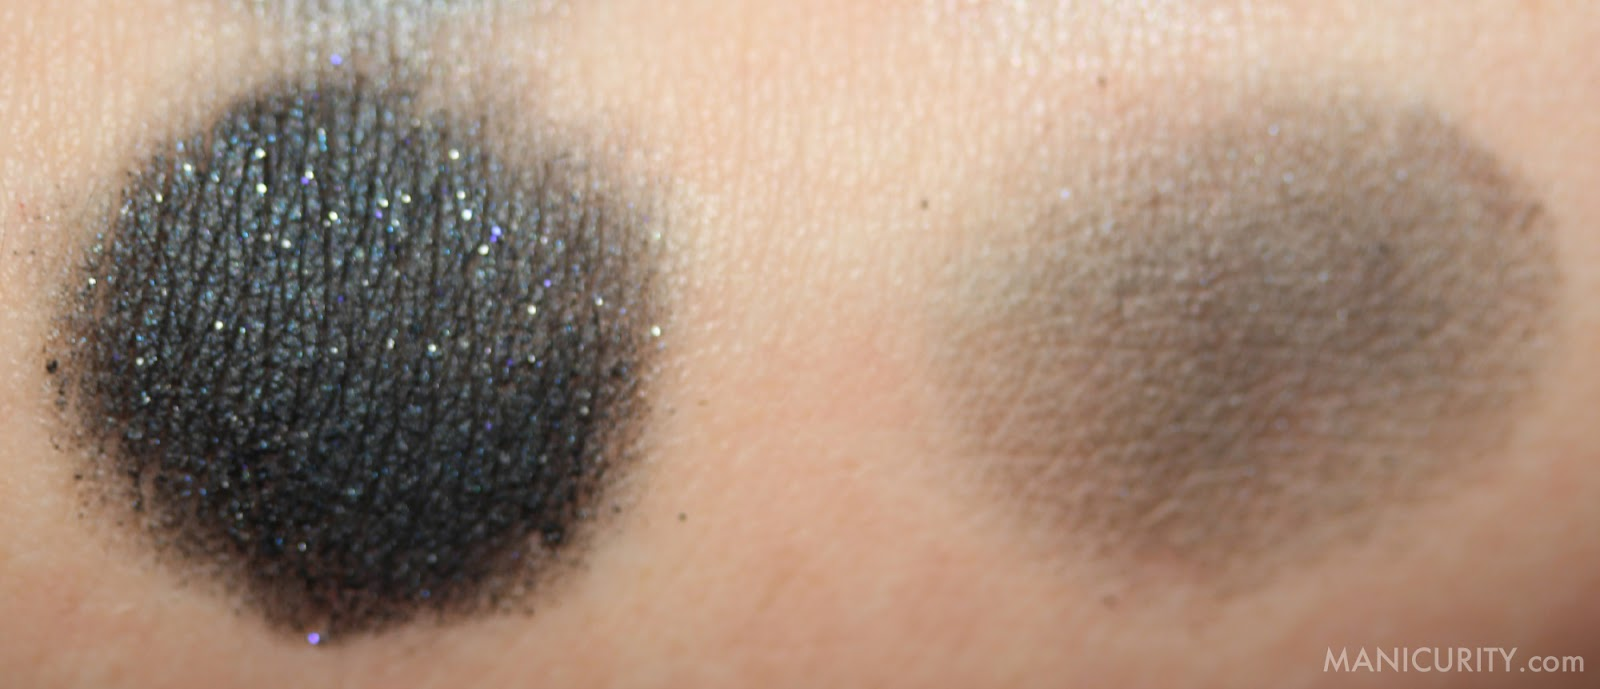 Manicurity - Ipsy Glam Bag December 2013 Hits & Misses | Pop Beauty Eyeshadow Palette Smokin' Hot swatches, review, eye look, glittery smokey eye